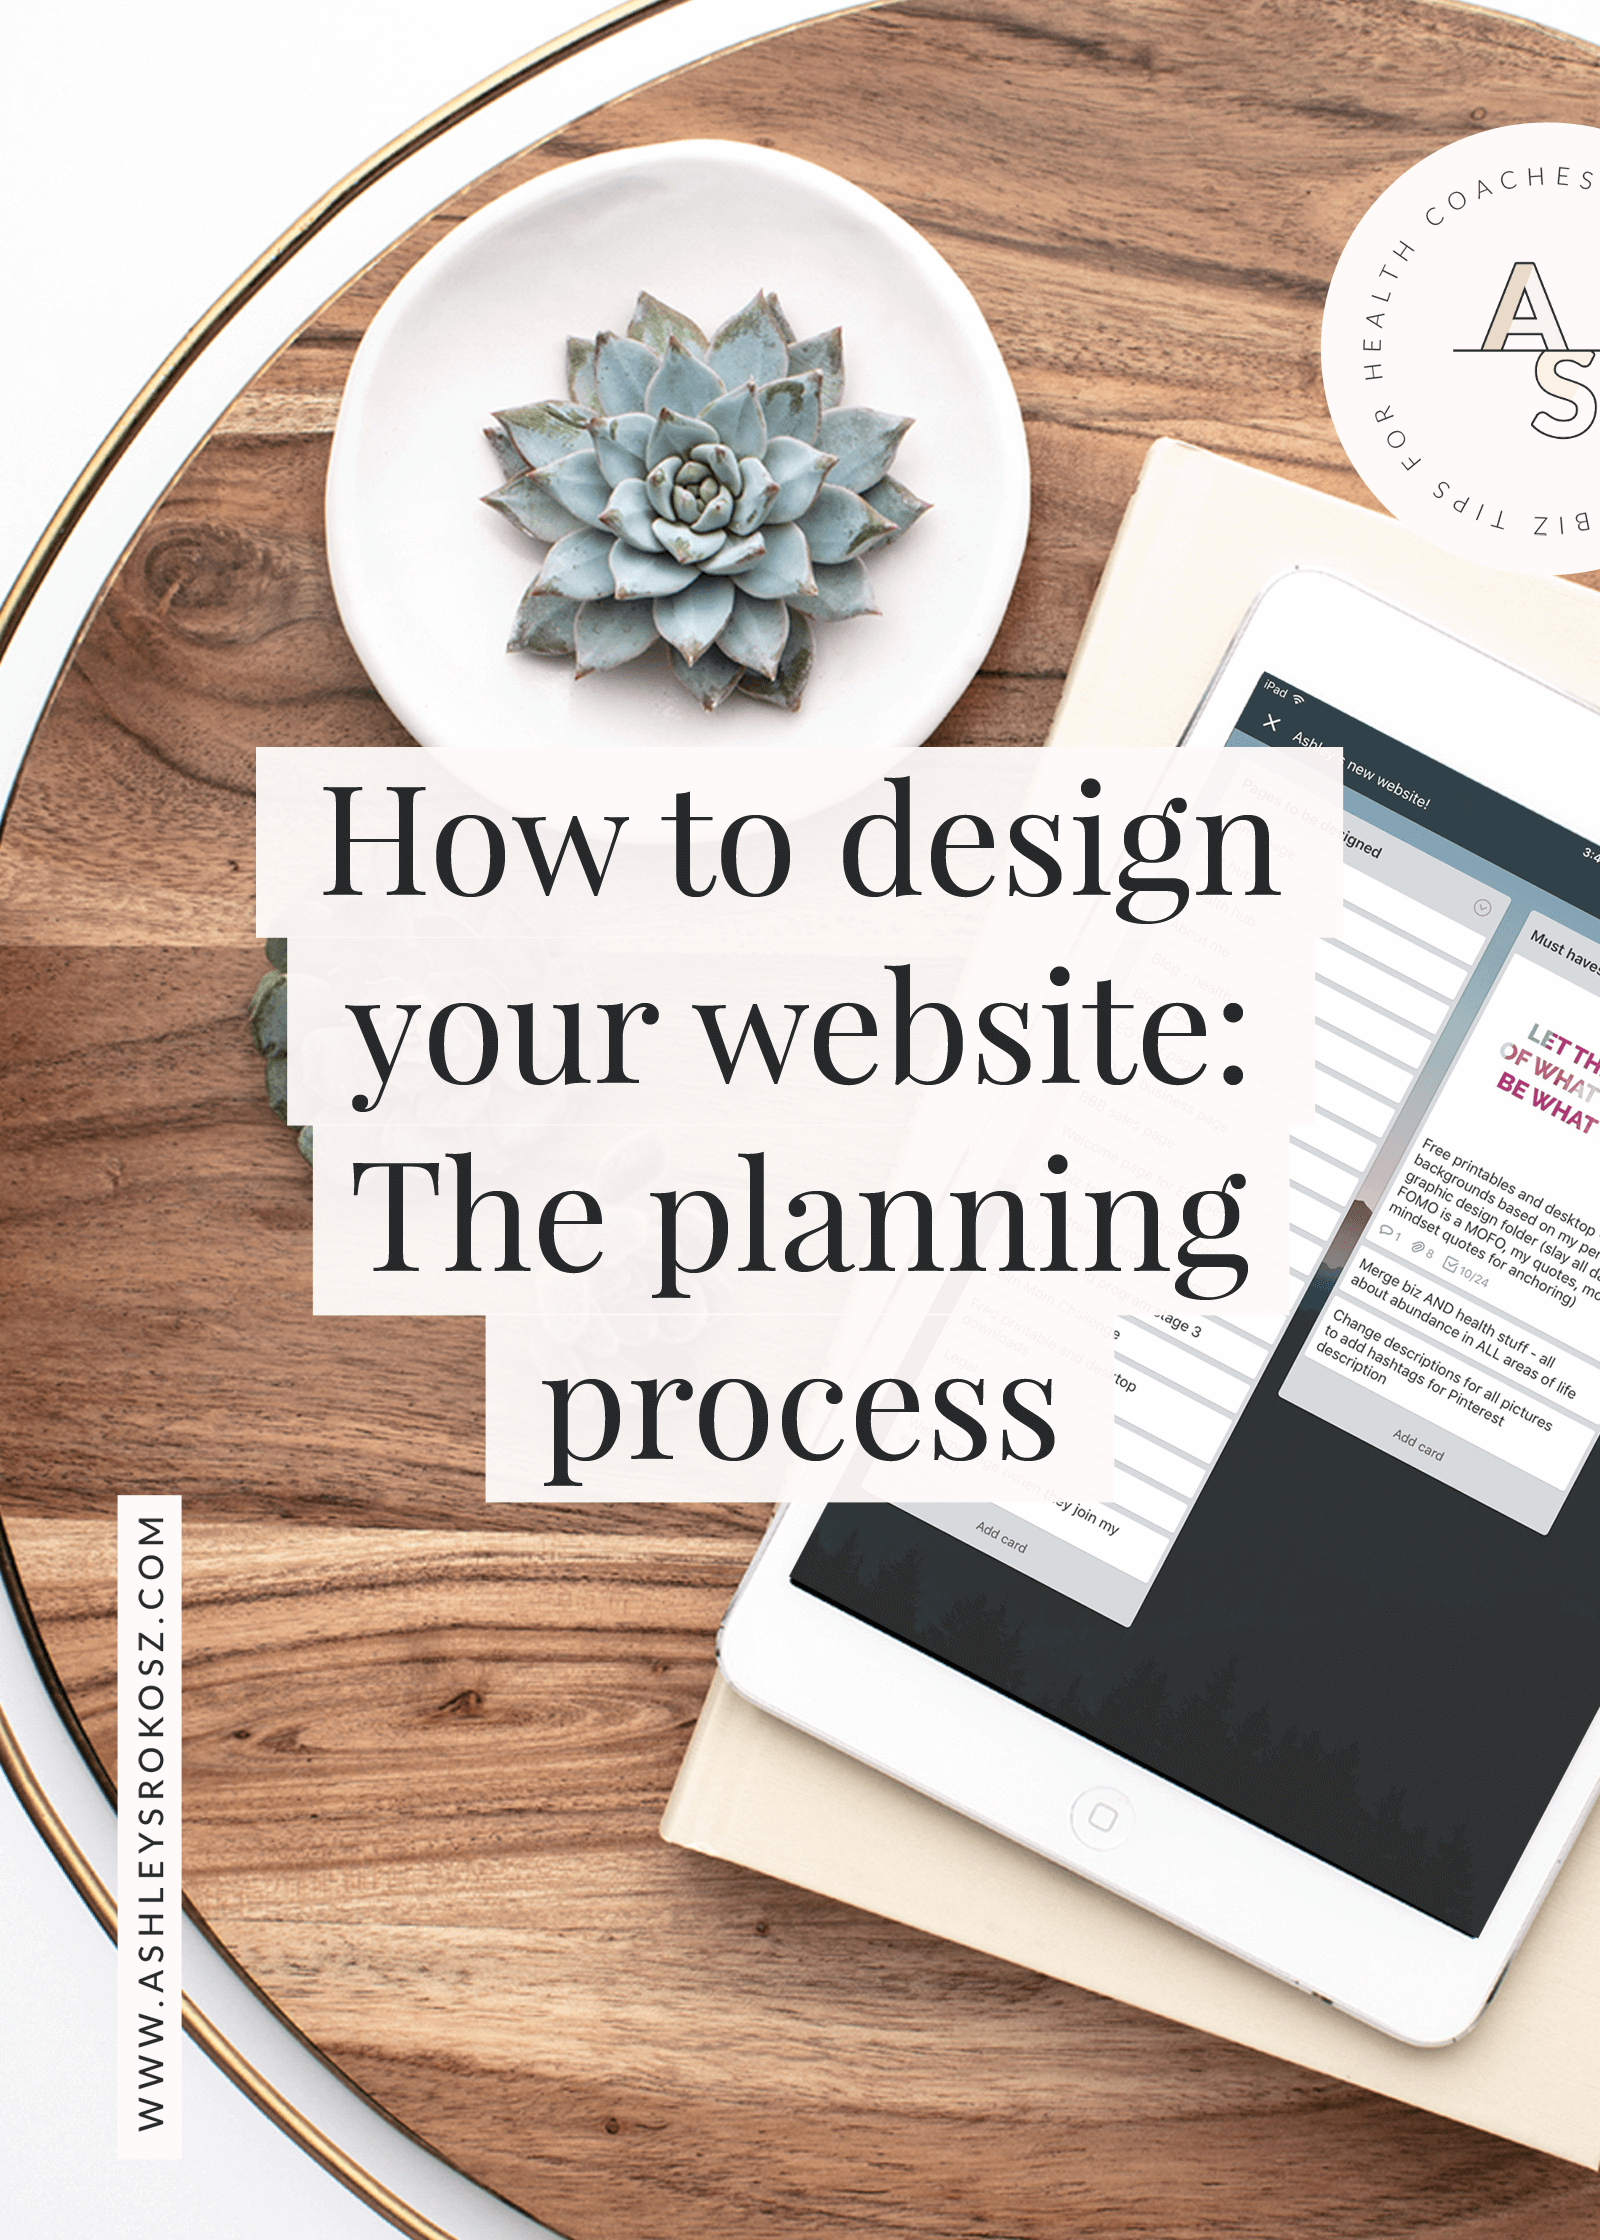 Do you want a new website (or re-do your current one) and don't know where to start? Click here to learn how to plan out the process for your new website using free tools! #healthcoach #healthcoachwebsite #nutritionistwebsitedesign #nutritionistwebsite